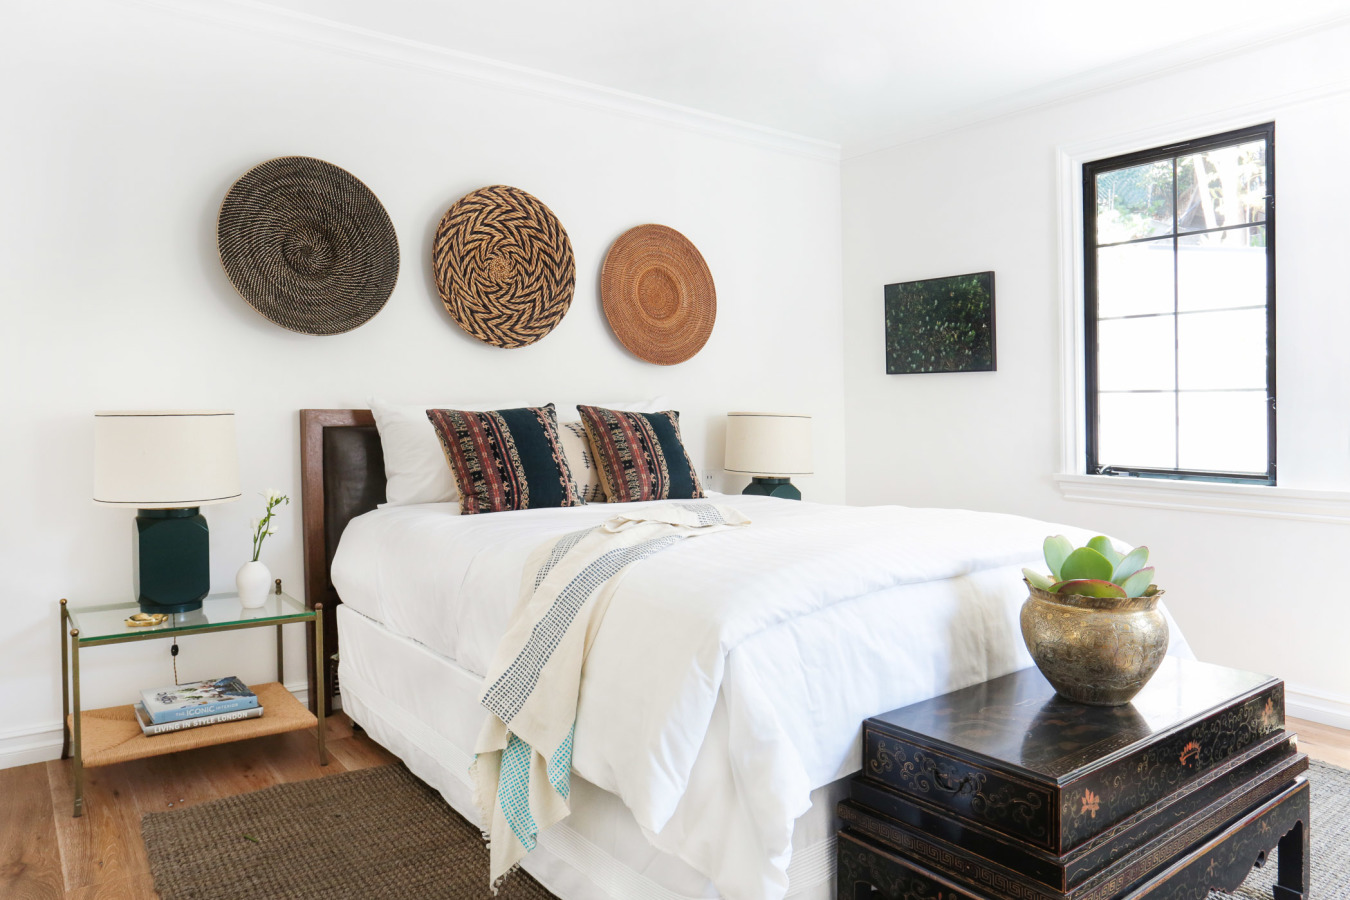 THE TOP 20 WAYS TO STYLE THE END OF YOUR BED ACCORDING TO INTERIOR DESIGNERS -  From Jonathan Adler to Jeremiah Brent, these design experts have thoughts on the matter.BY JONATHAN STEINITZ